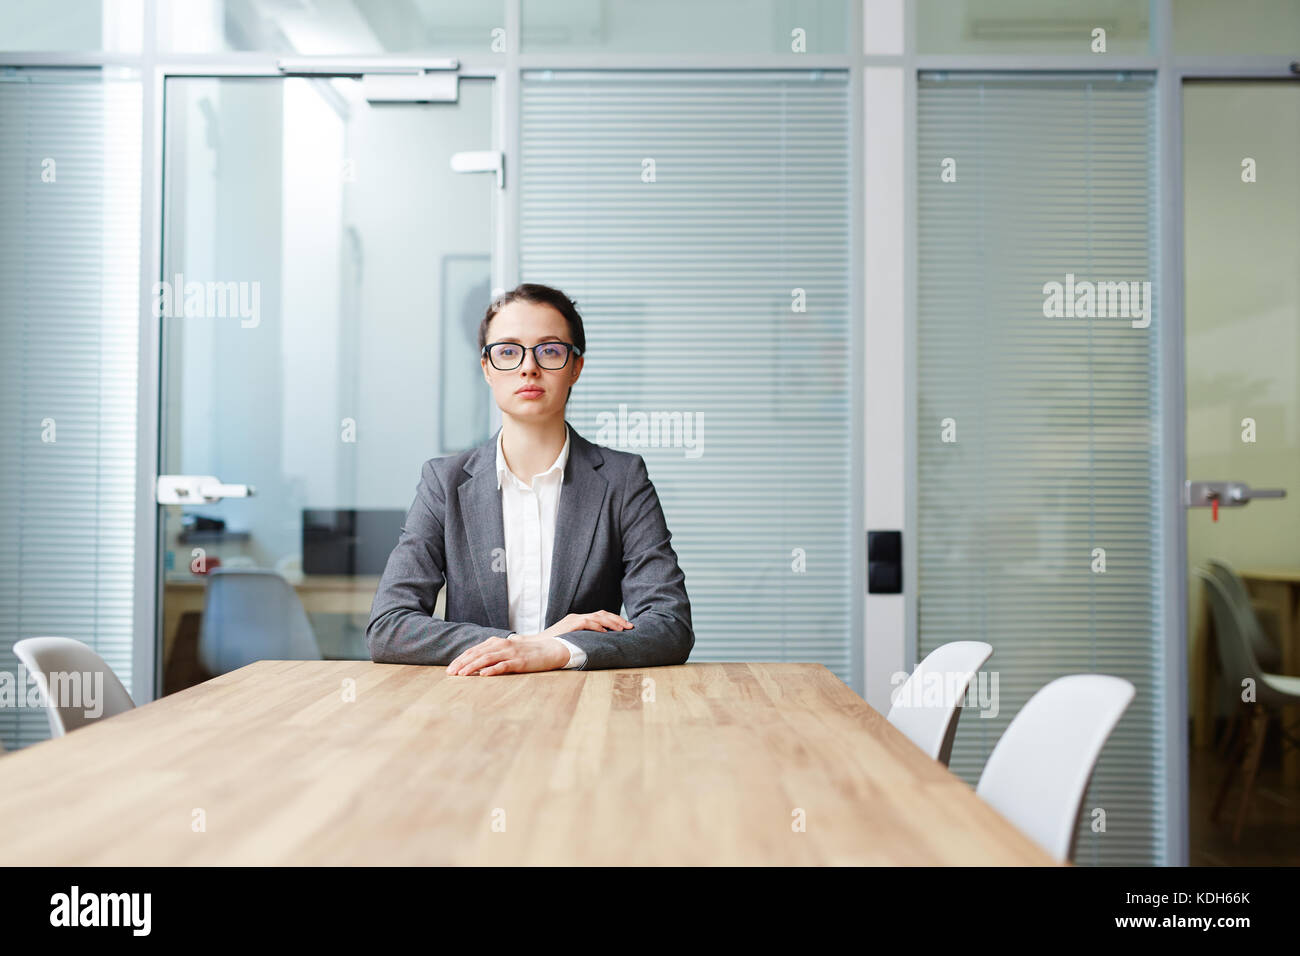 Serious employer waiting for another applicant by table in boardroom - Stock Image